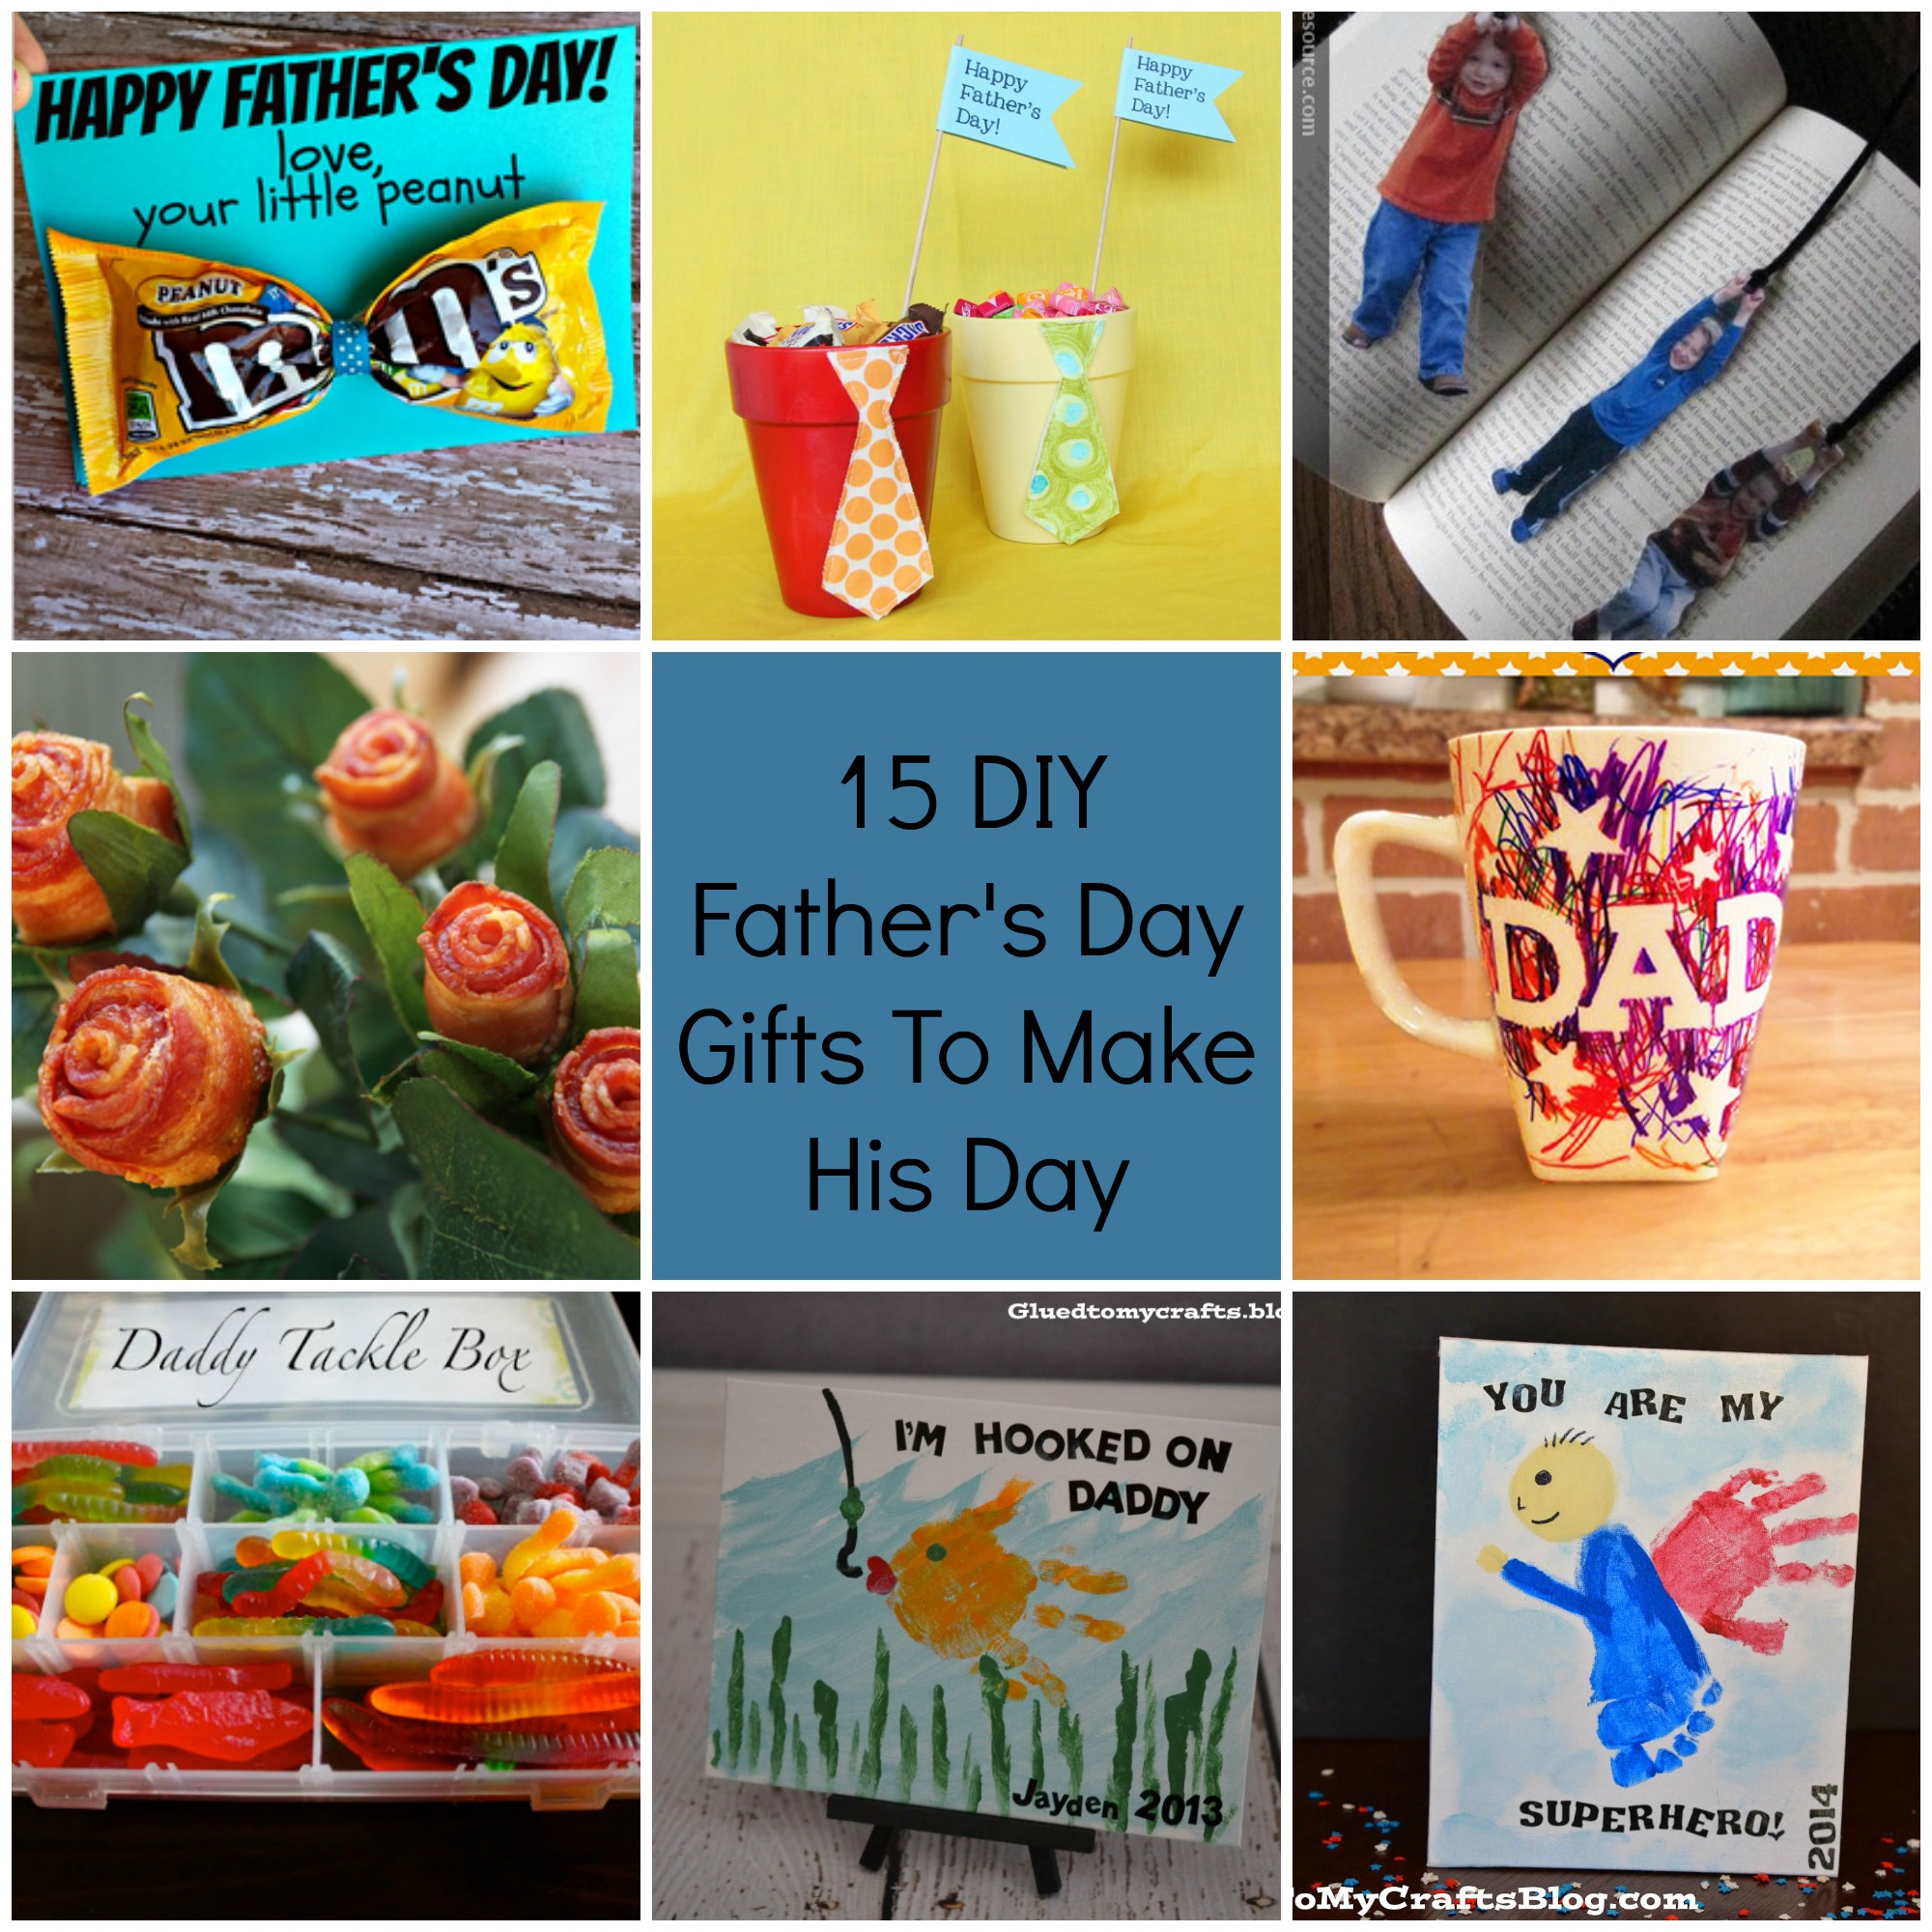 Father's Day Candy Jar. Turn a simple glass jar into a creative gift for dad. Use decorative paper to make a tie pattern and to decorate the top of the jar. Fill the jar with Dad's favorite snacks and treats, and present it to him for a happy Father's Day.